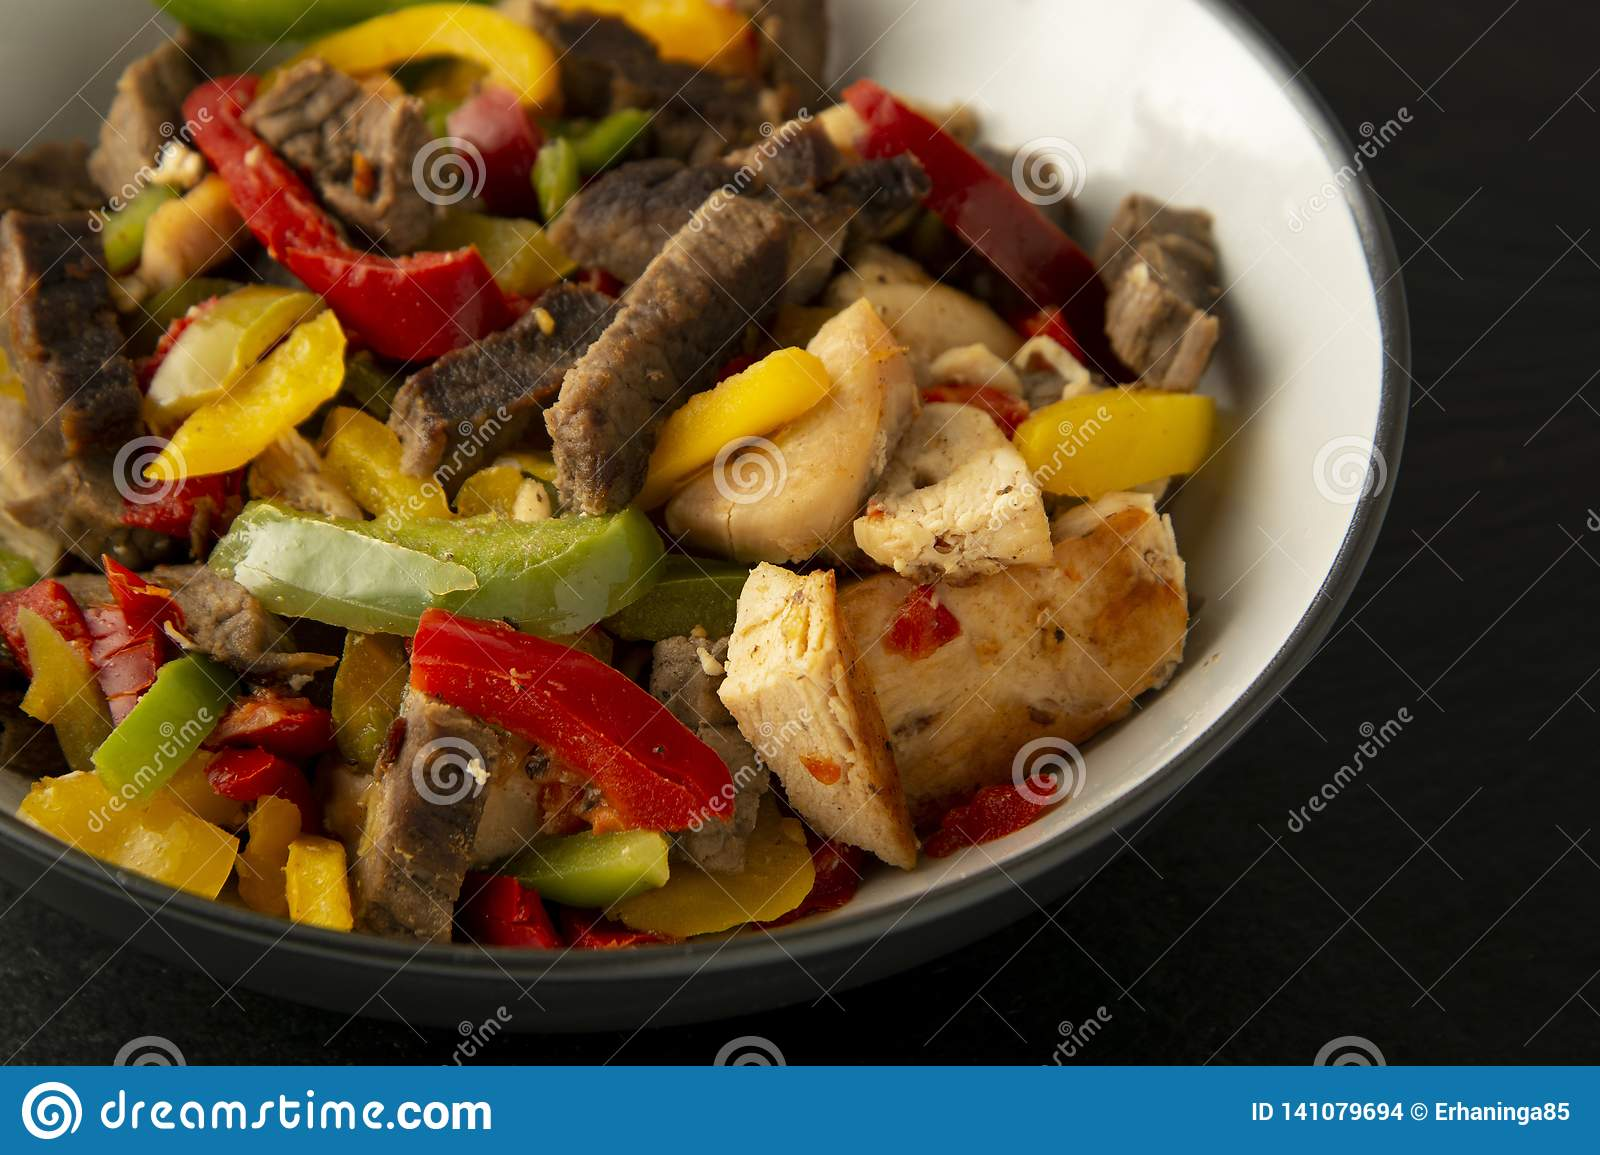 Fry Meat With Vegetables On Stone Slate Plates Dinner